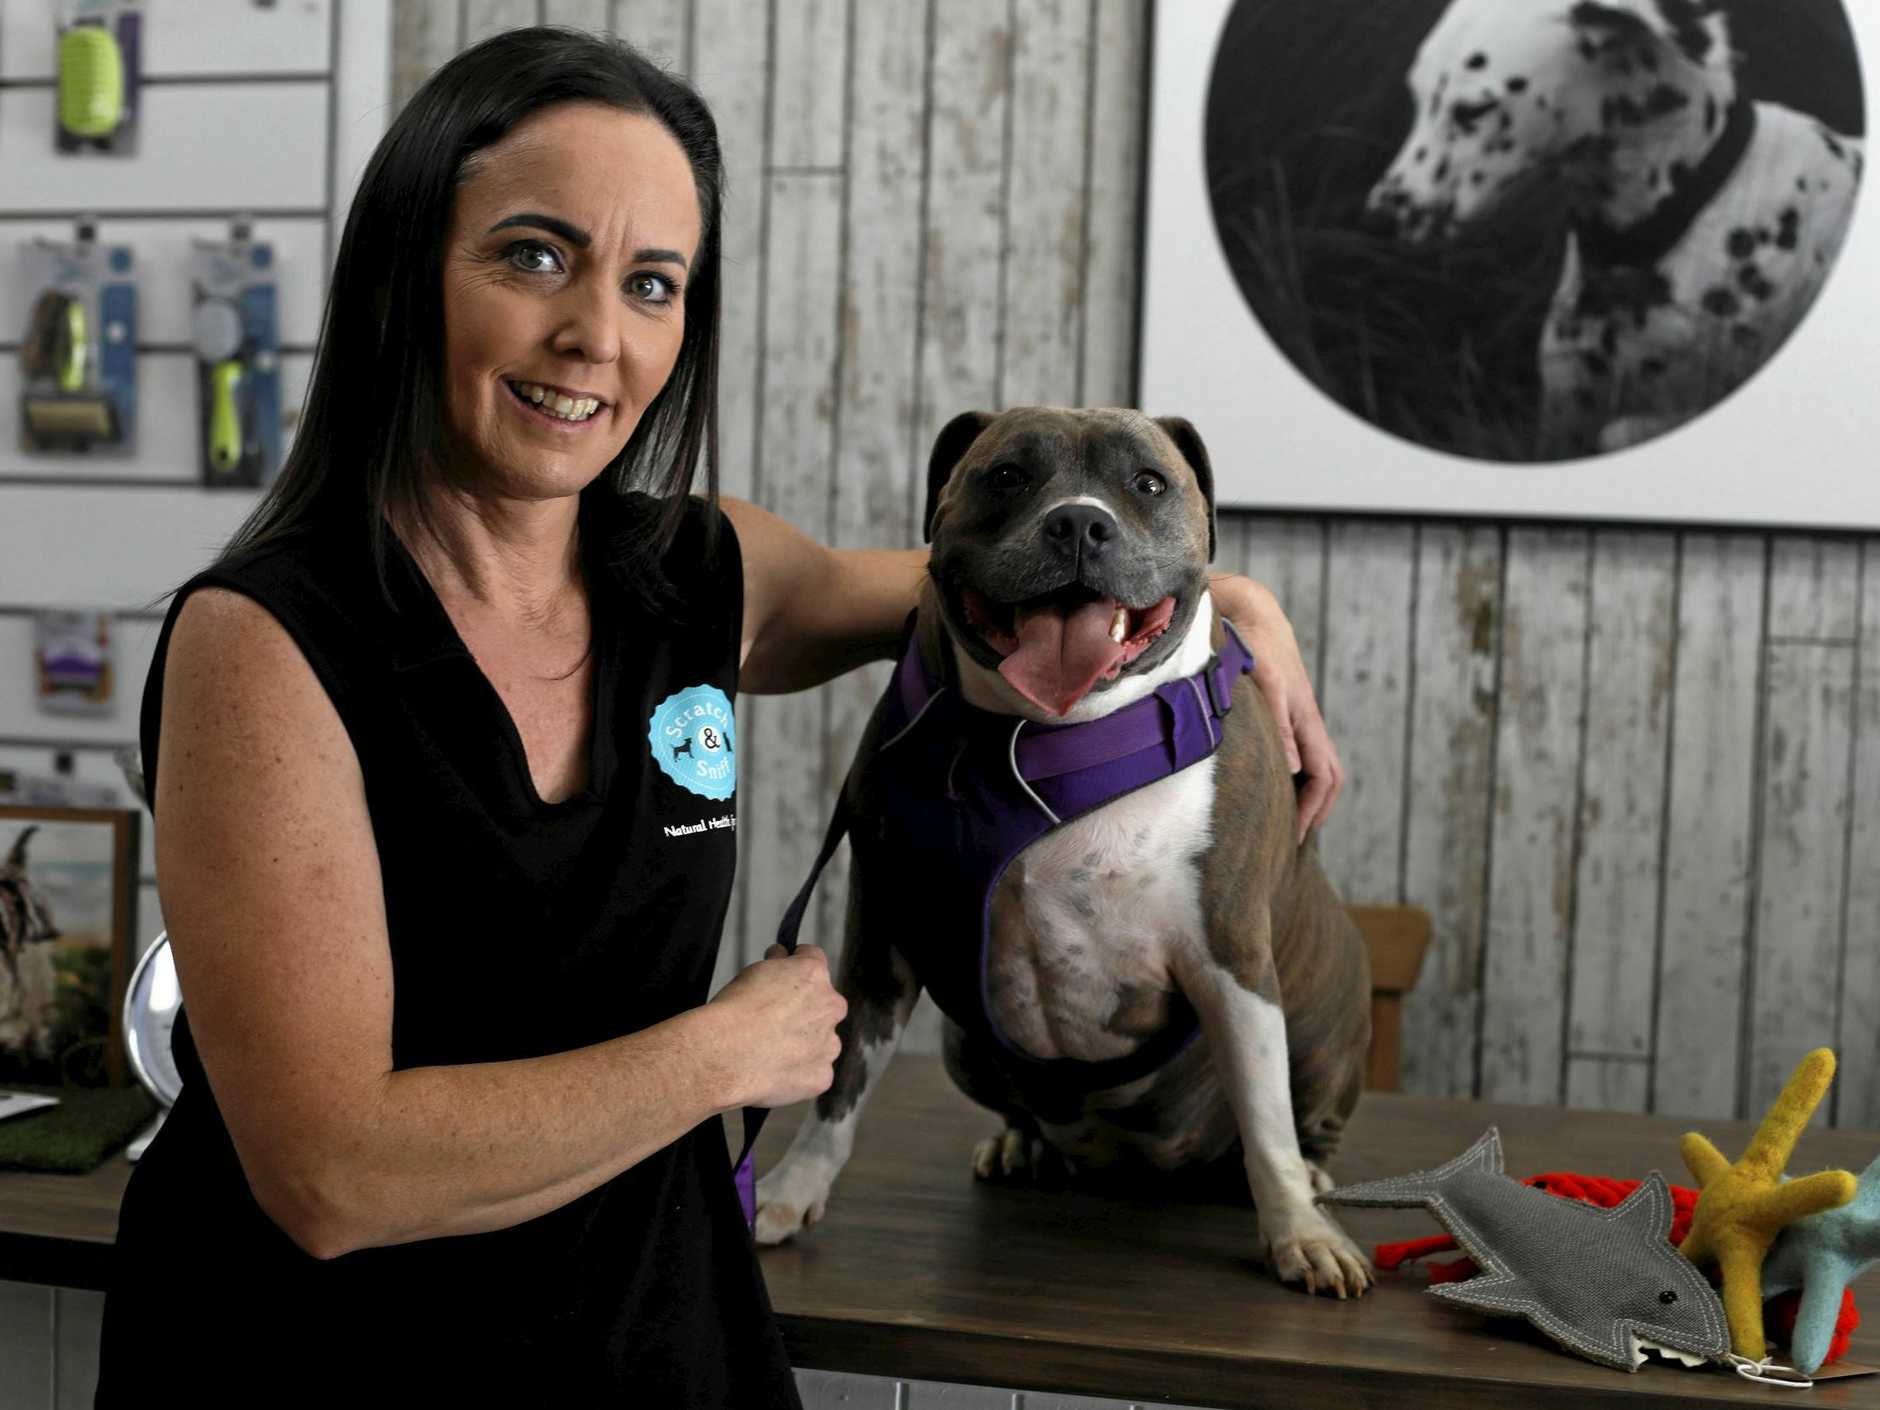 Scratch and Sniff owner Karen English with her pooch, Zoe.